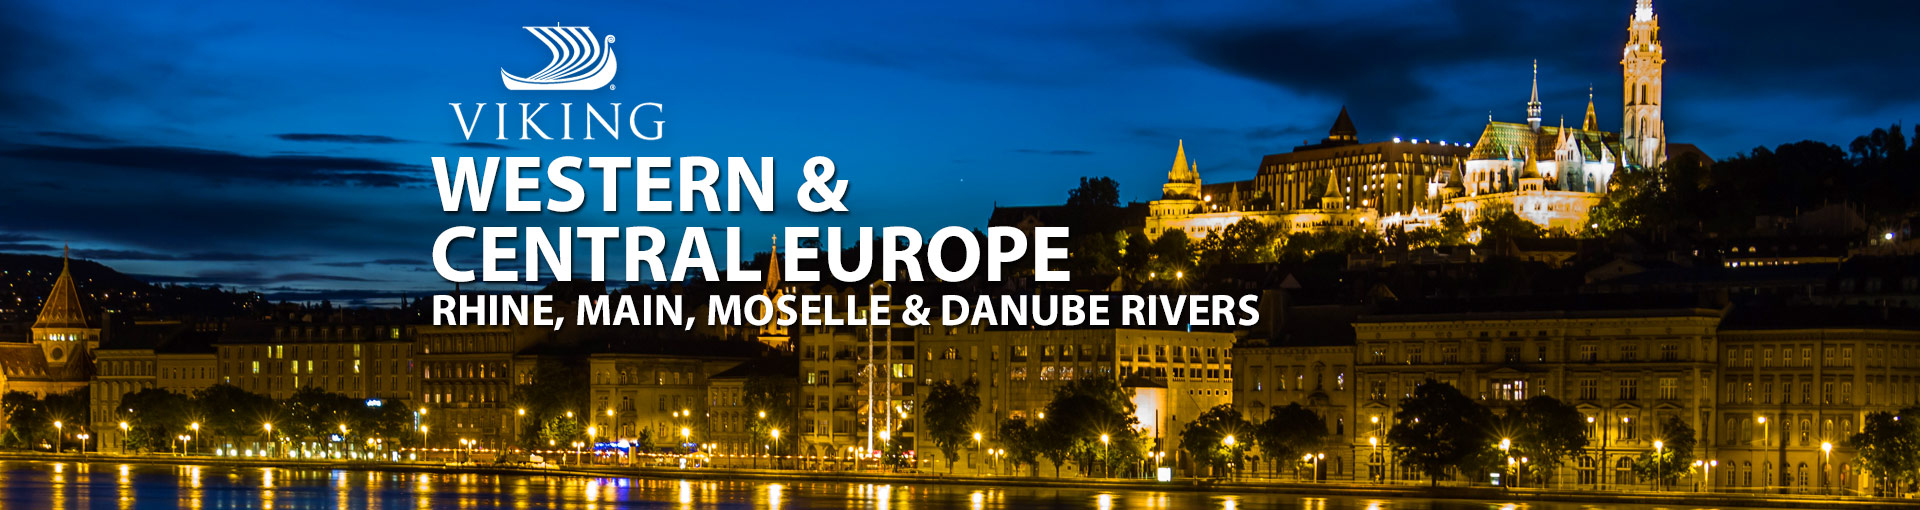 Viking River Cruises to Western and Central Europe